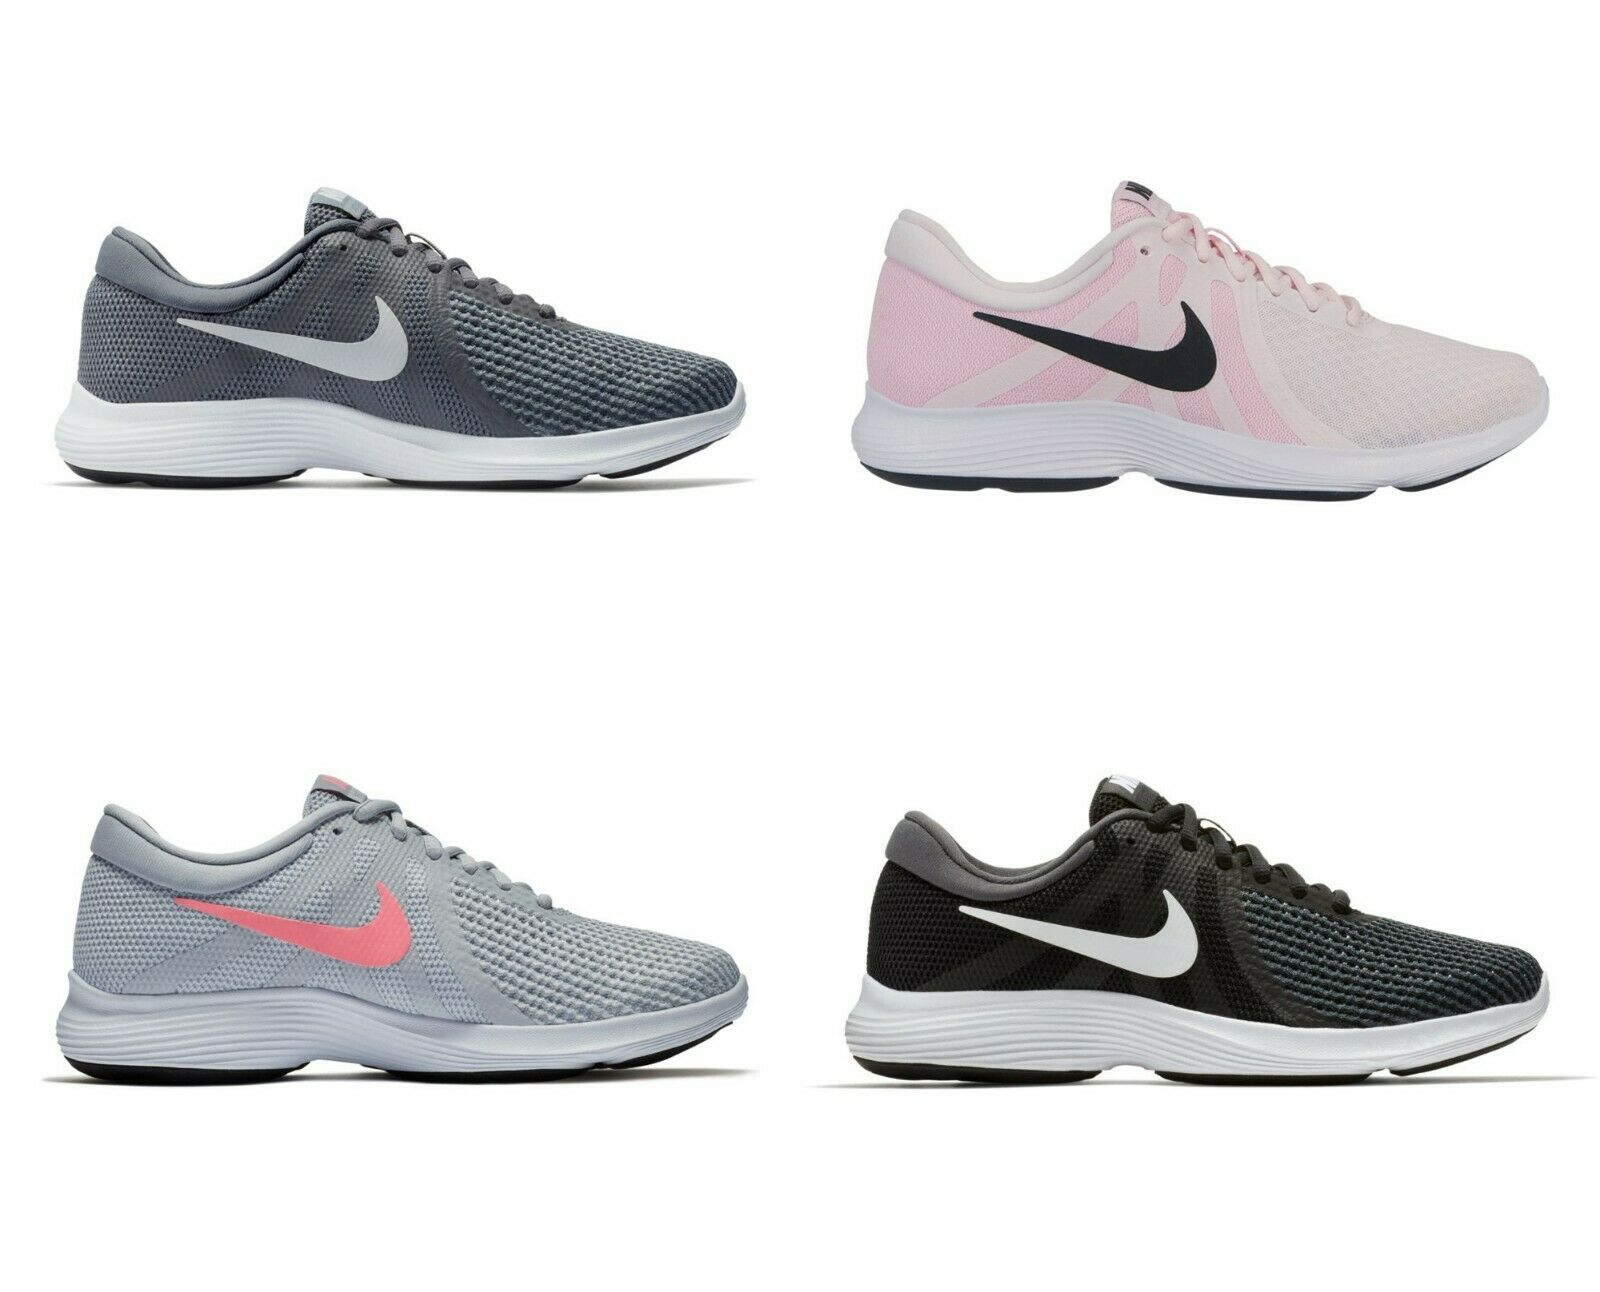 NEW NIKE WOMEN'S REVOLUTION IV 4 RUNNING TRAINING SHOE-DIFFERENT SIZES & COLORS!